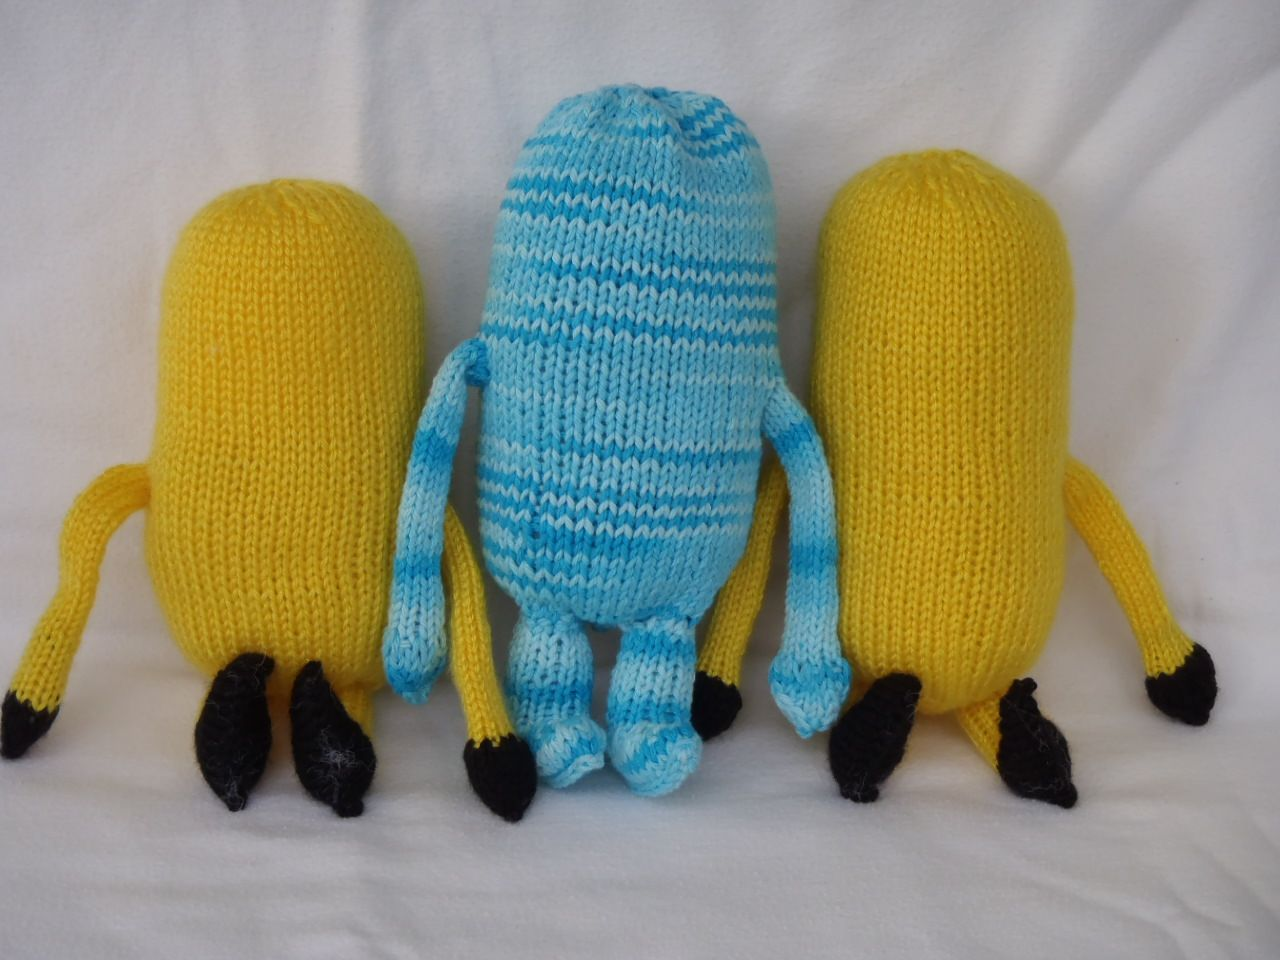 Stana\'s Critters Etc.: Knitting Pattern for Minions - Part 1 | Craft ...